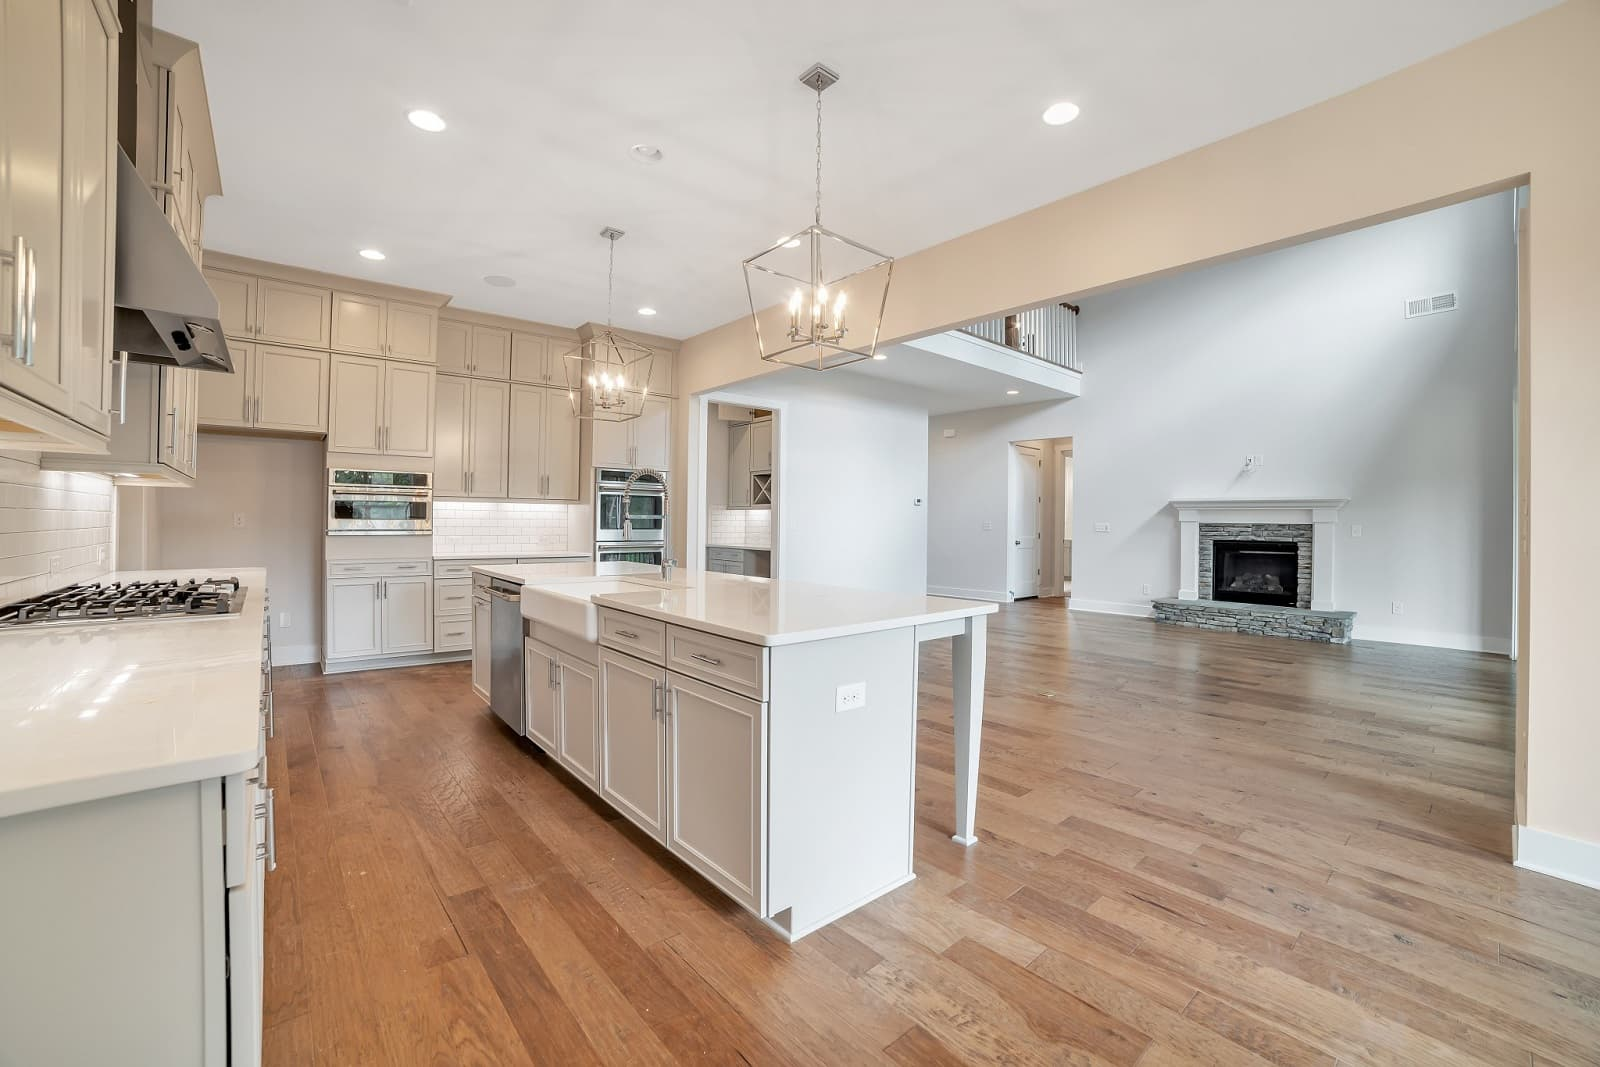 Real Estate Photography in Huntersville - NC - USA - Kitchen View